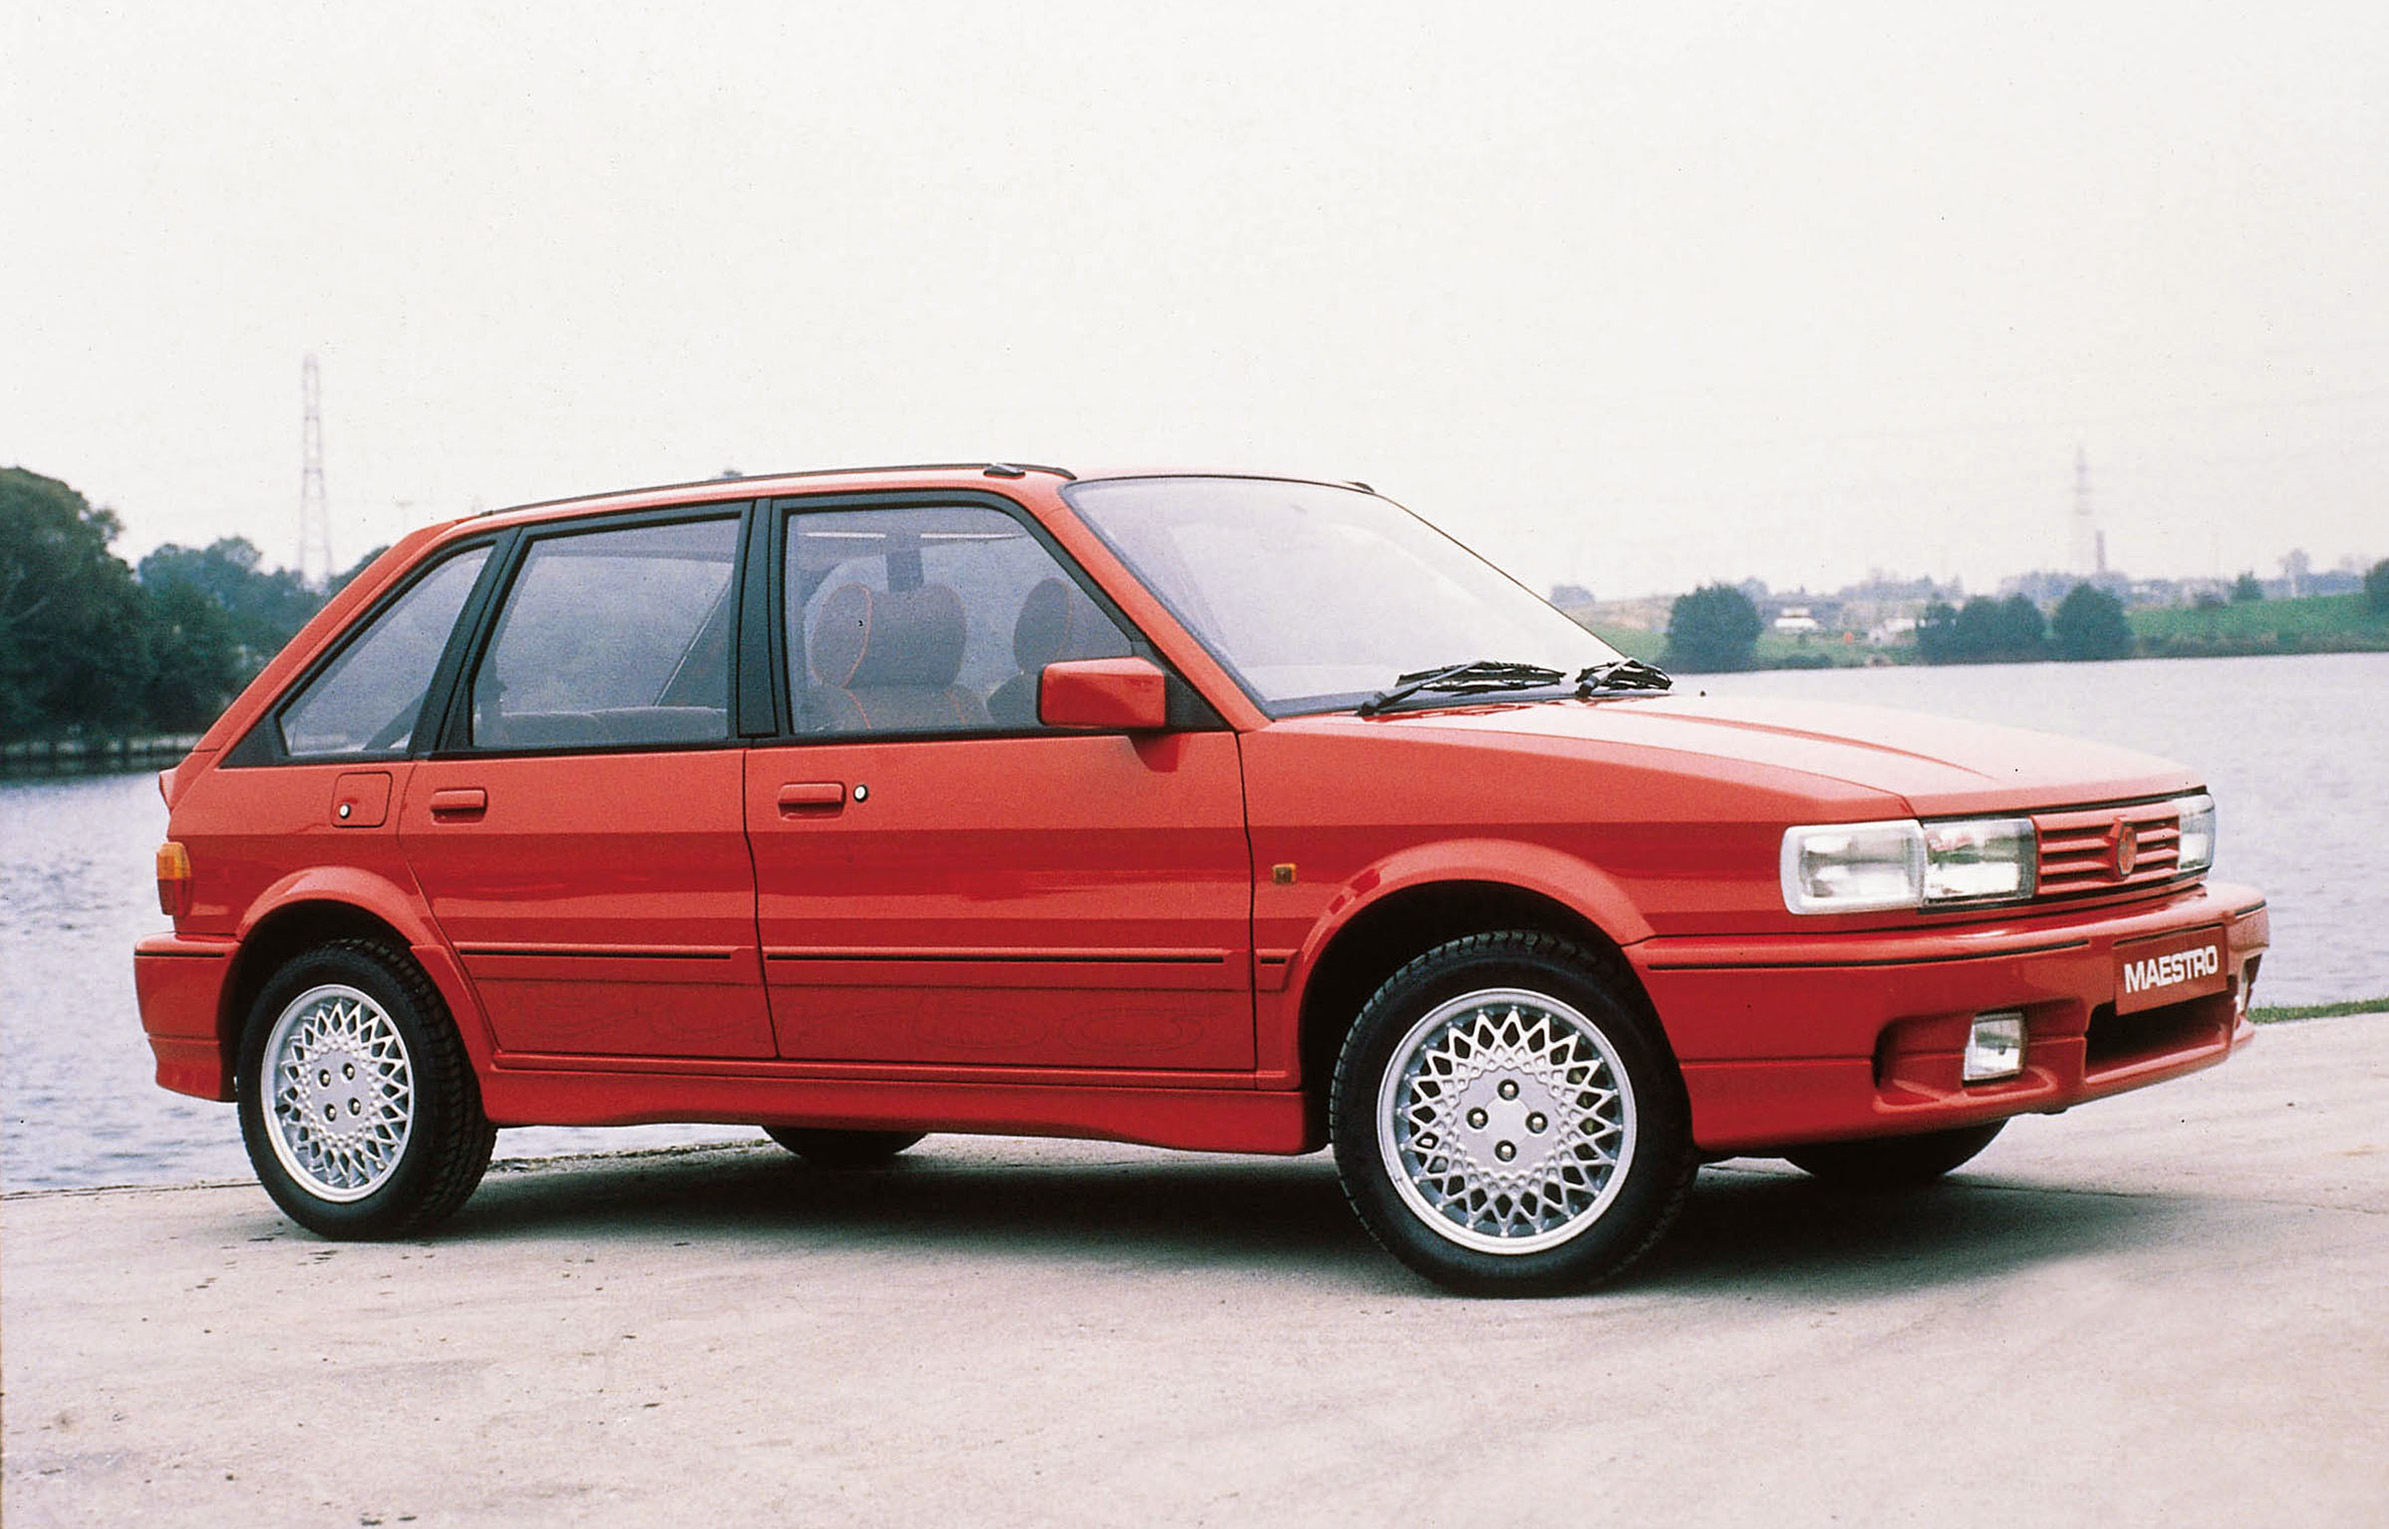 Red MG Maestro